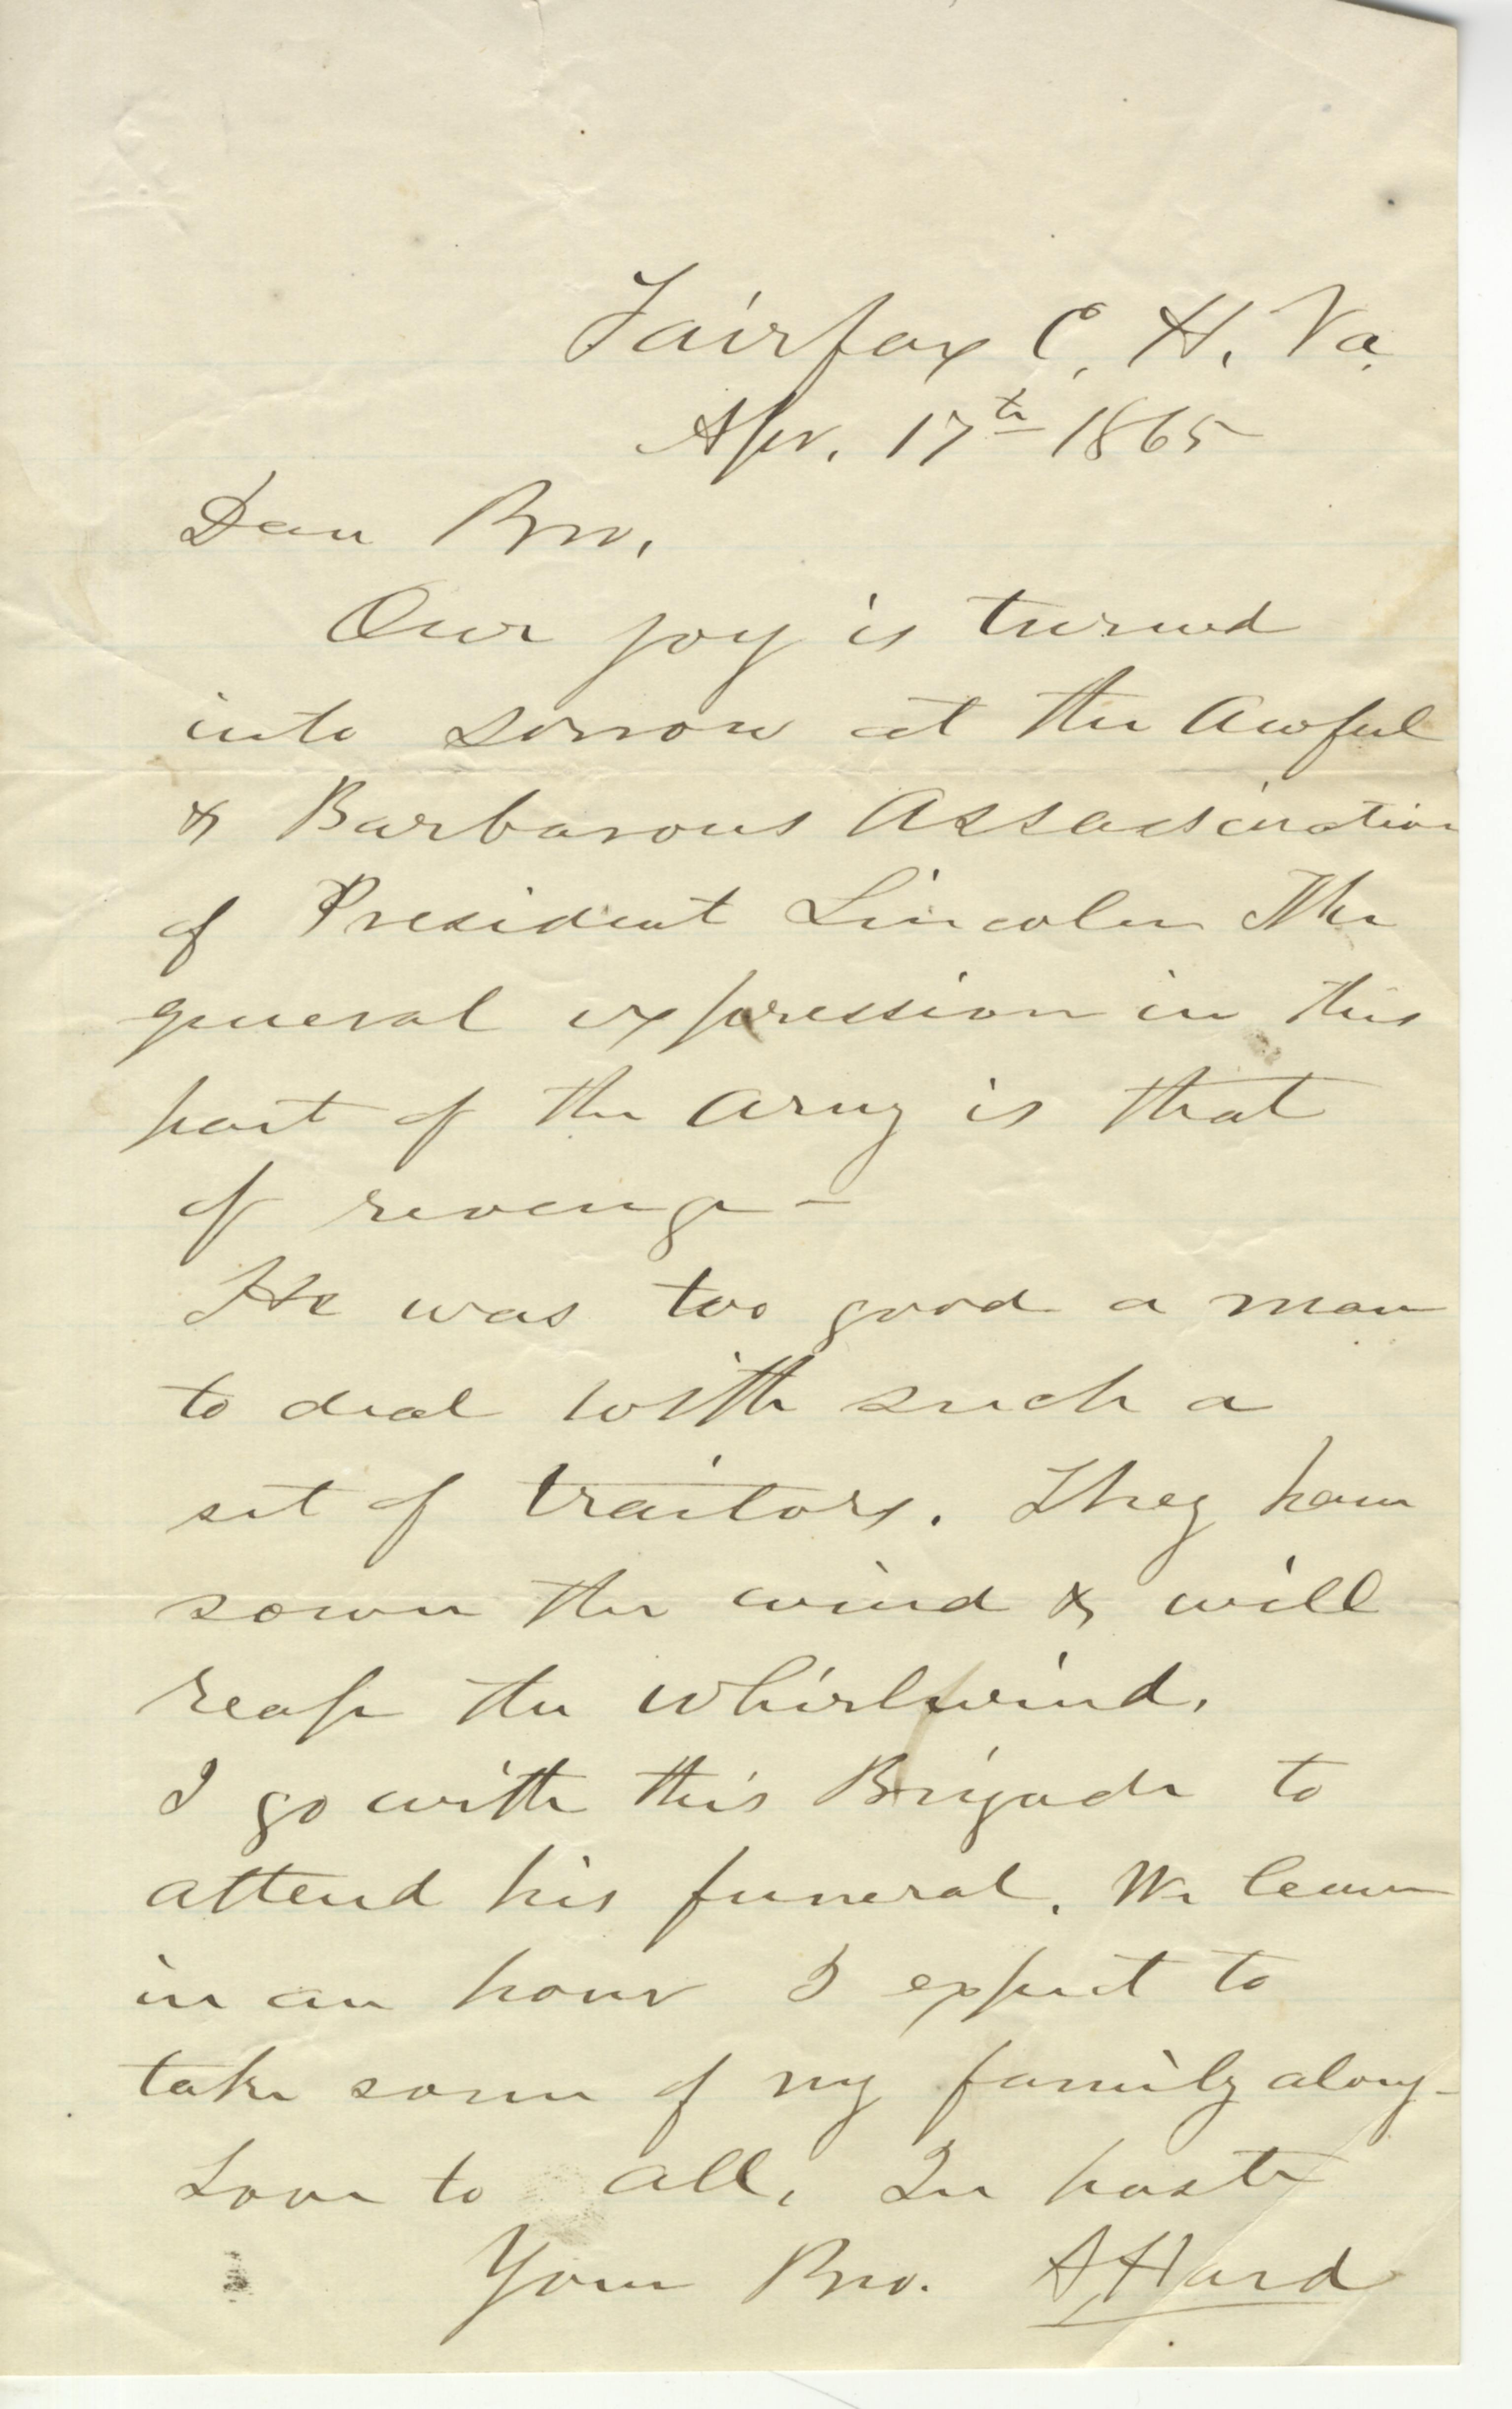 8th Illinois Cavalry Letter in Reaction to Lincoln's Death -